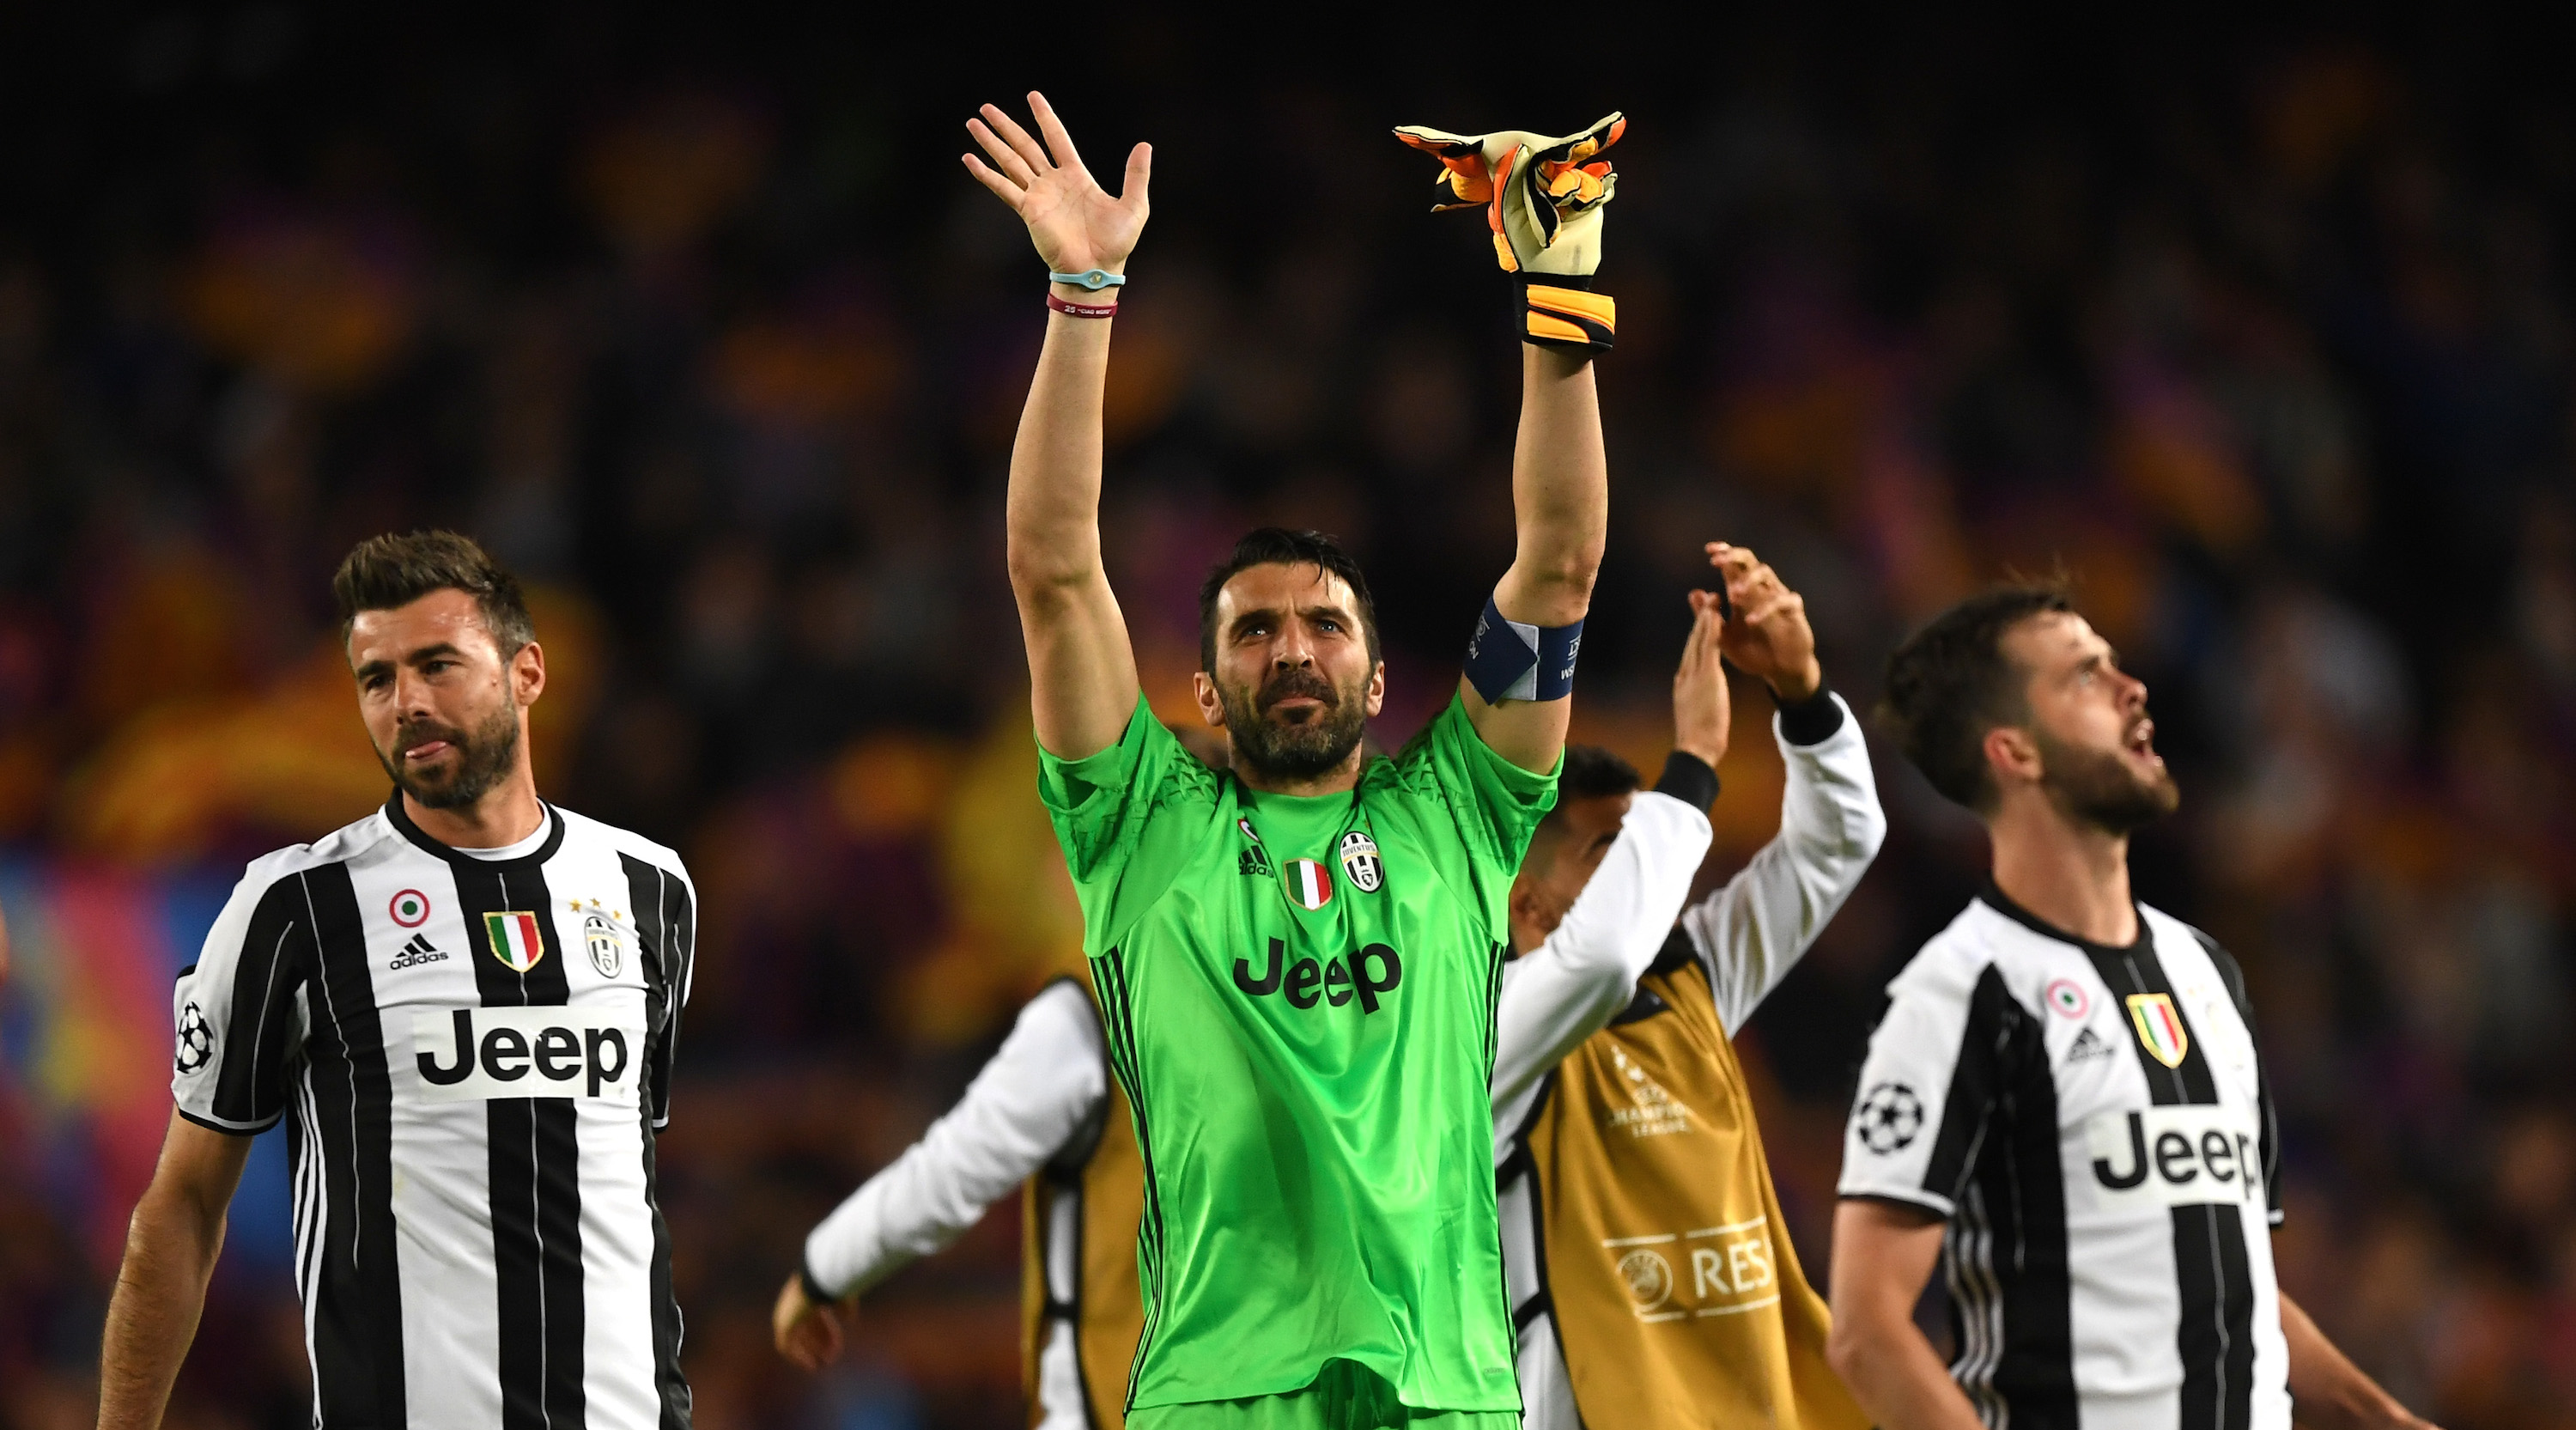 BARCELONA, SPAIN - APRIL 19: Gianluigi Buffon of Juventus shows appreciation to the fans after the UEFA Champions League Quarter Final second leg match between FC Barcelona and Juventus at Camp Nou on April 19, 2017 in Barcelona, Spain. (Photo by Shaun Botterill/Getty Images)